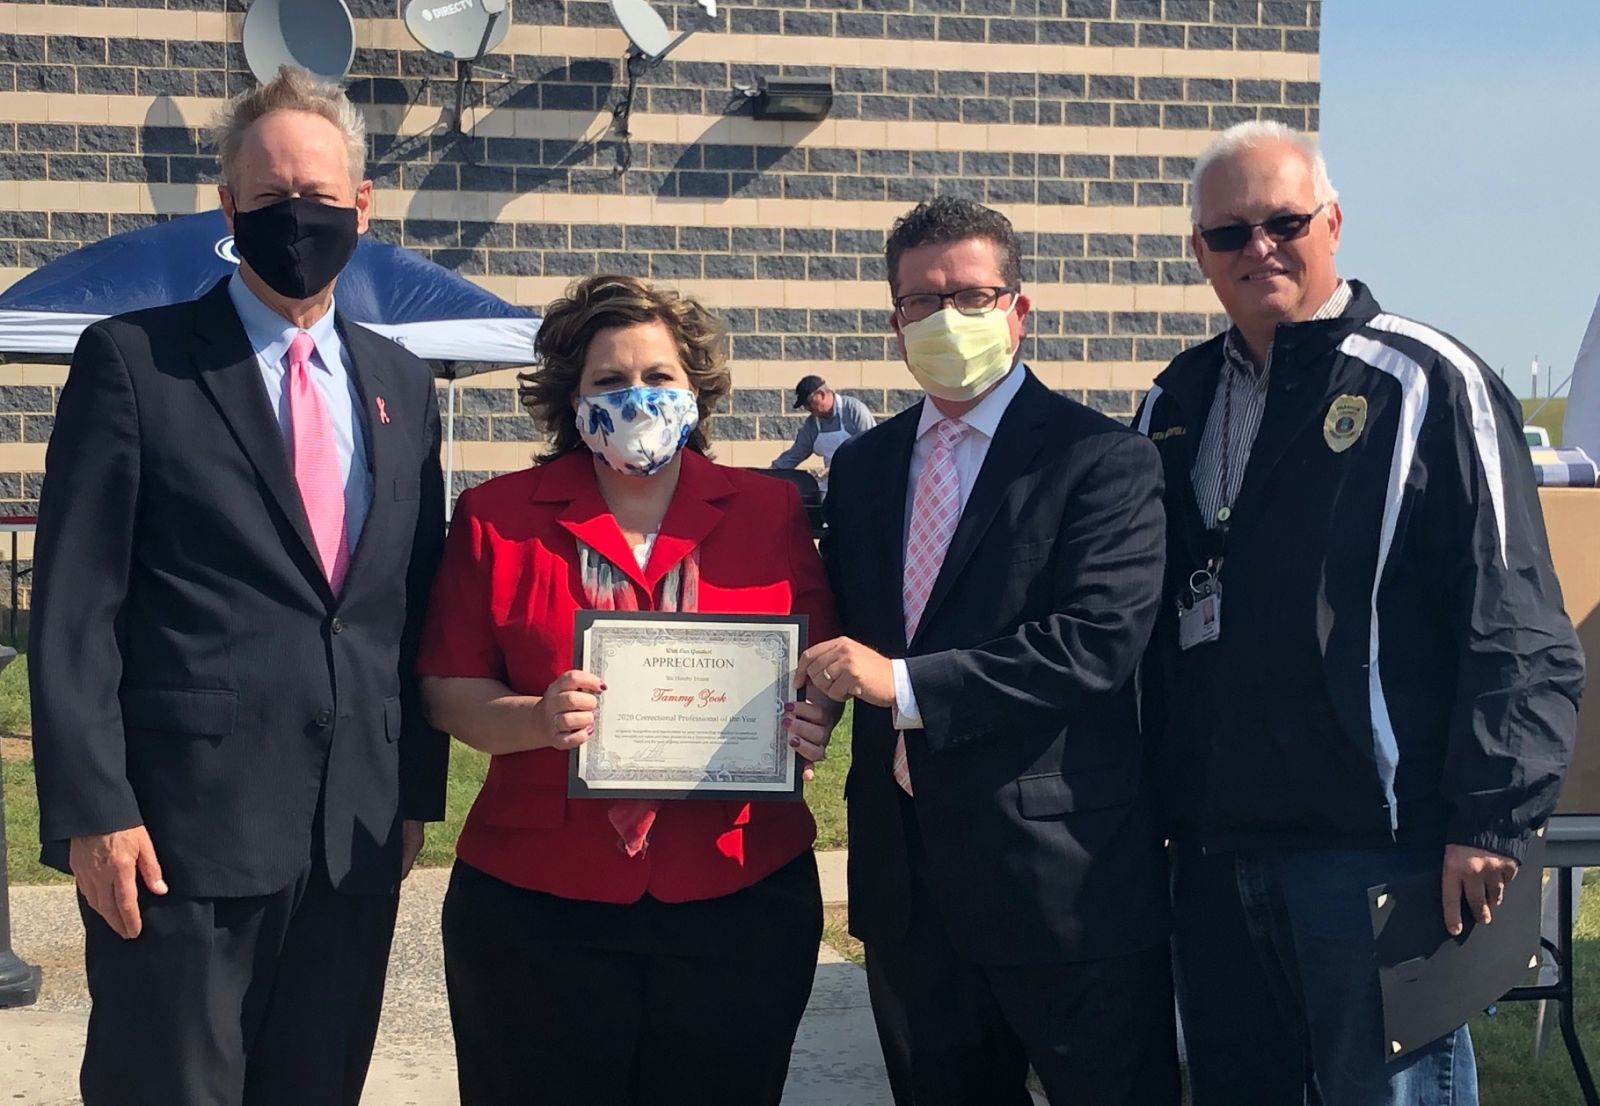 Above photo (left to right): Commissioner Bob Ziobrowski, Franklin County Jail Business Manager Tammy Zook, Commissioner Chairman Dave Keller, and Warden Bill Bechtold.